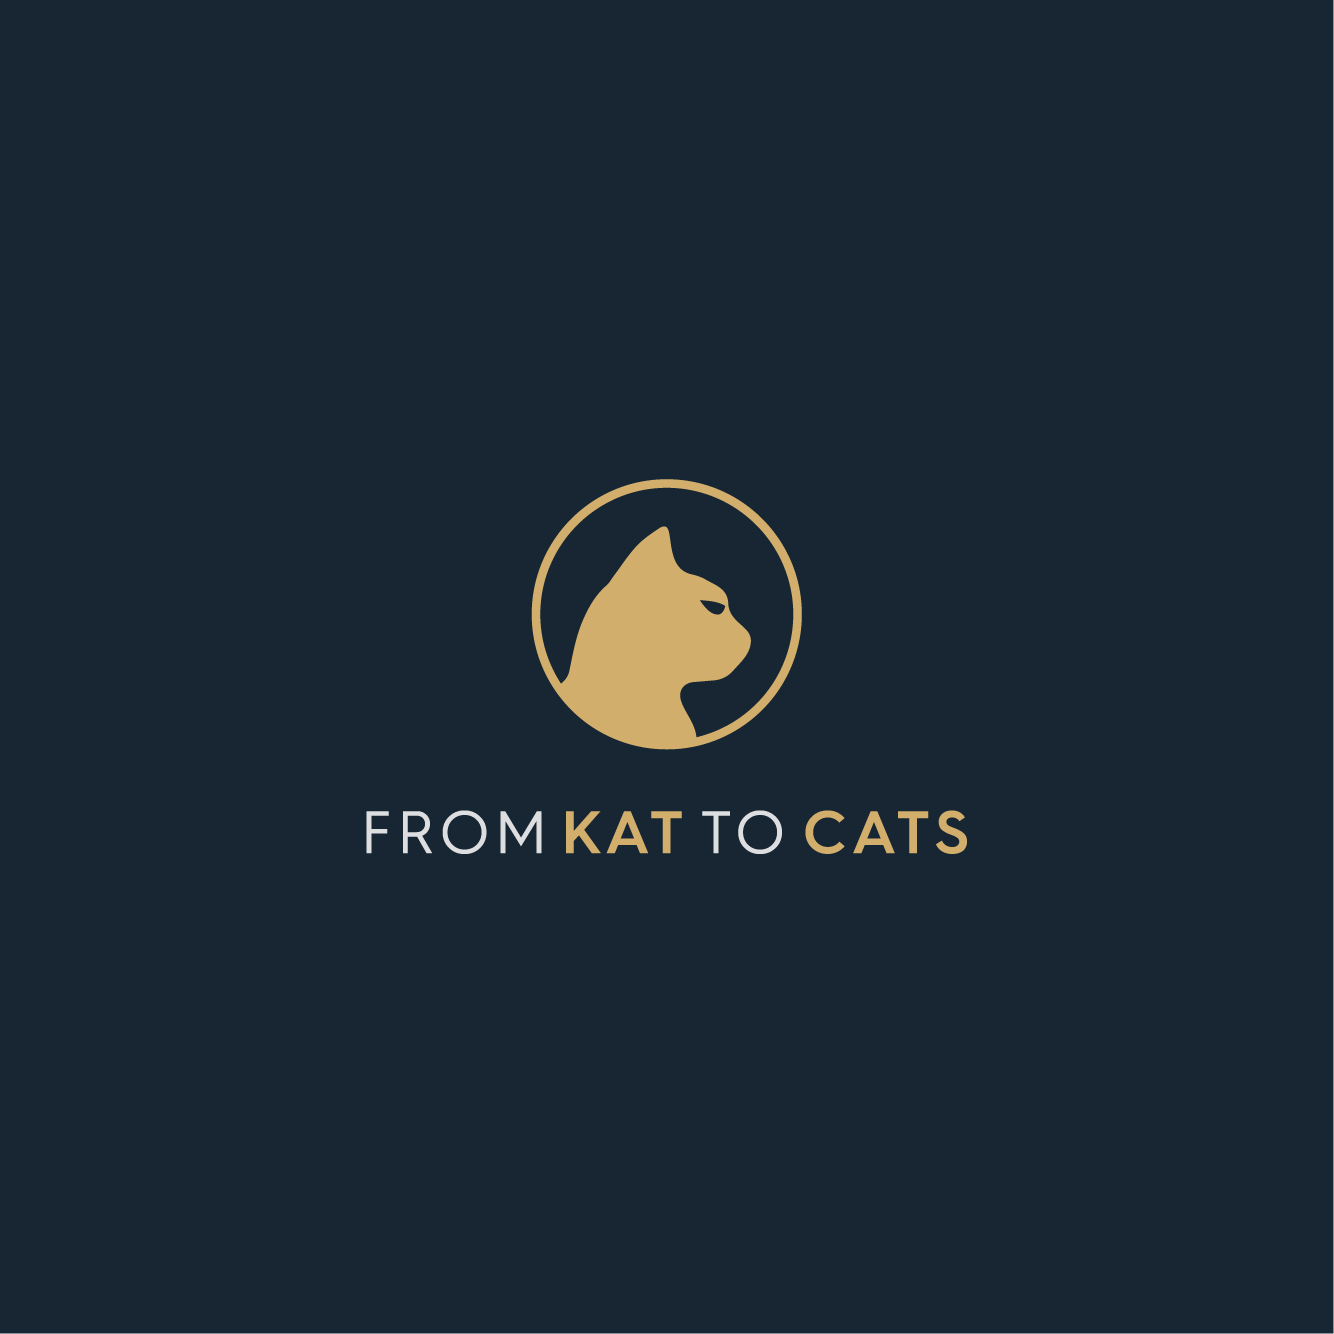 From Kat To Cats